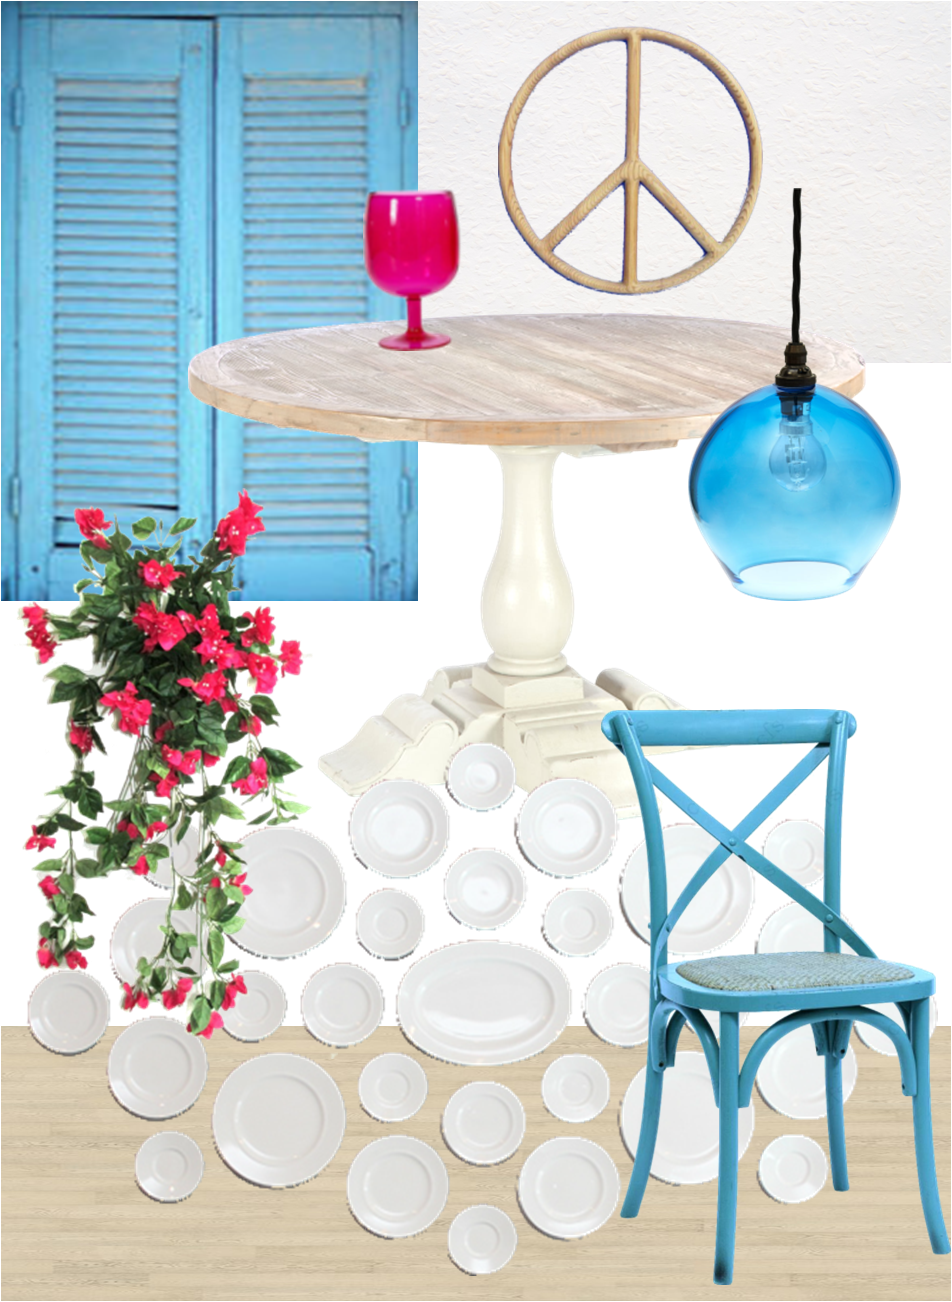 santorini inspired moodboard - greece - white - blue - decor